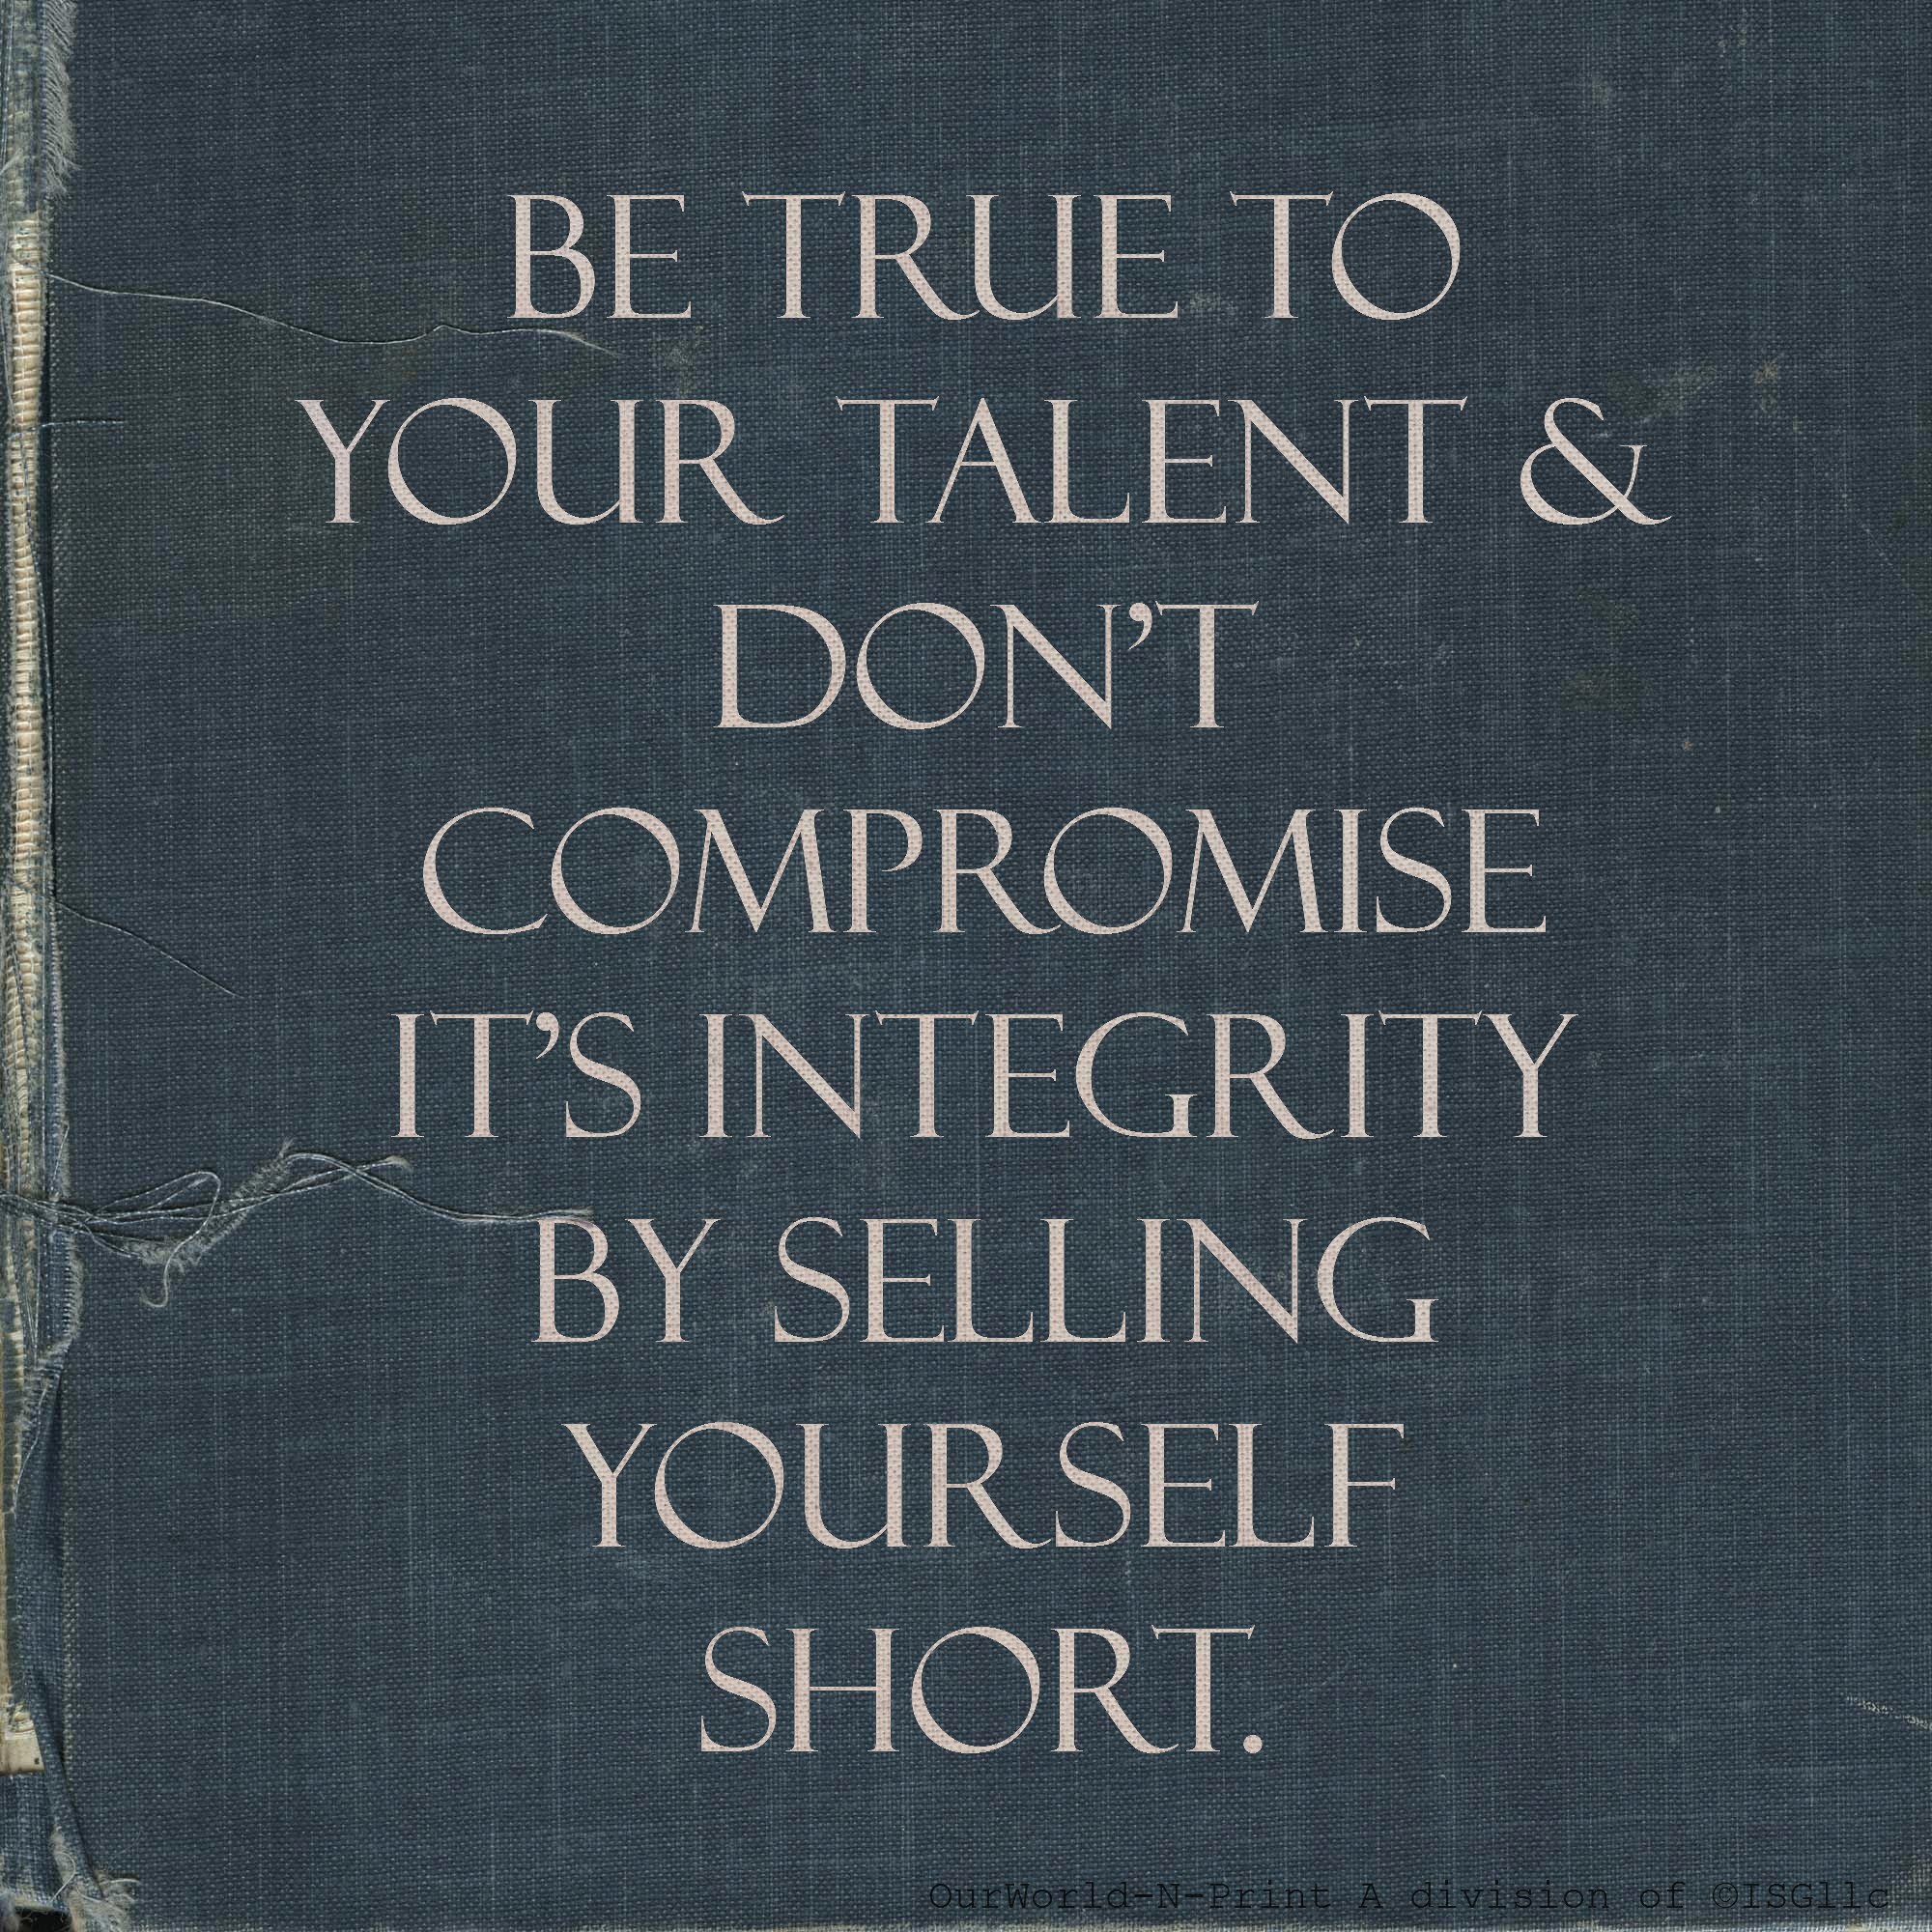 Be true to your talent